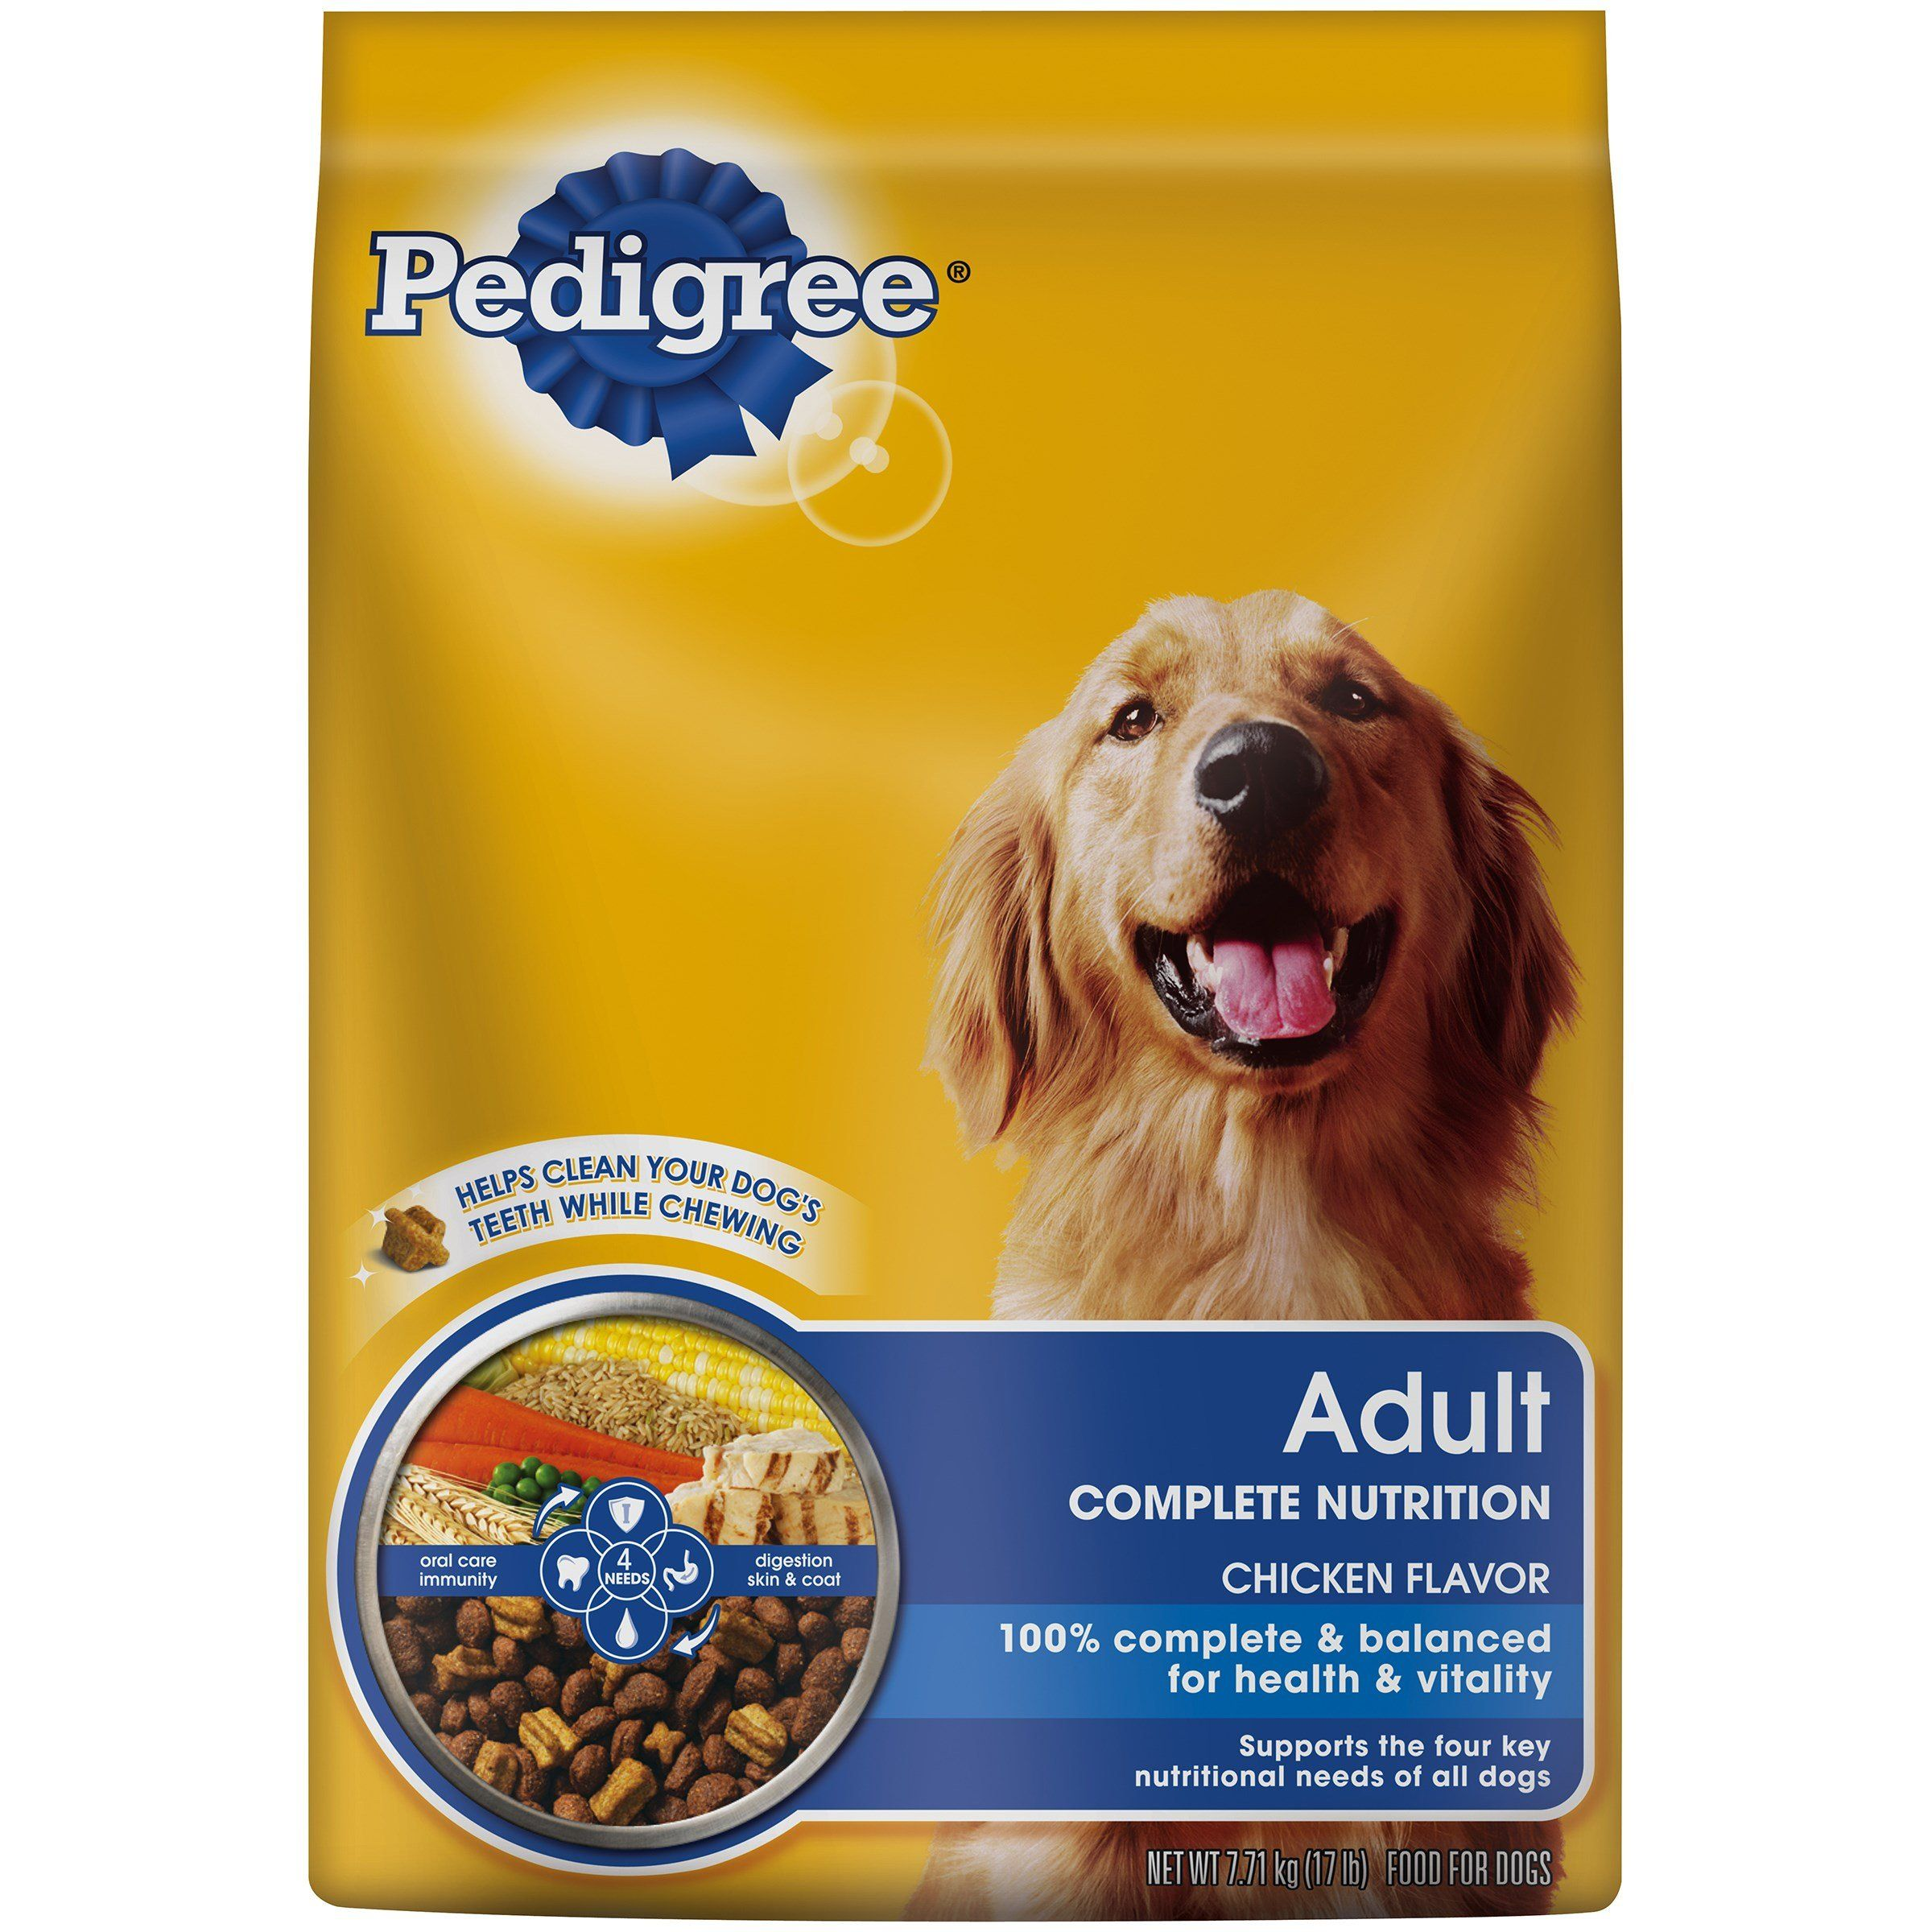 Pedigree 20 Lb Small Beef Bites Complete Nutrition Click Image